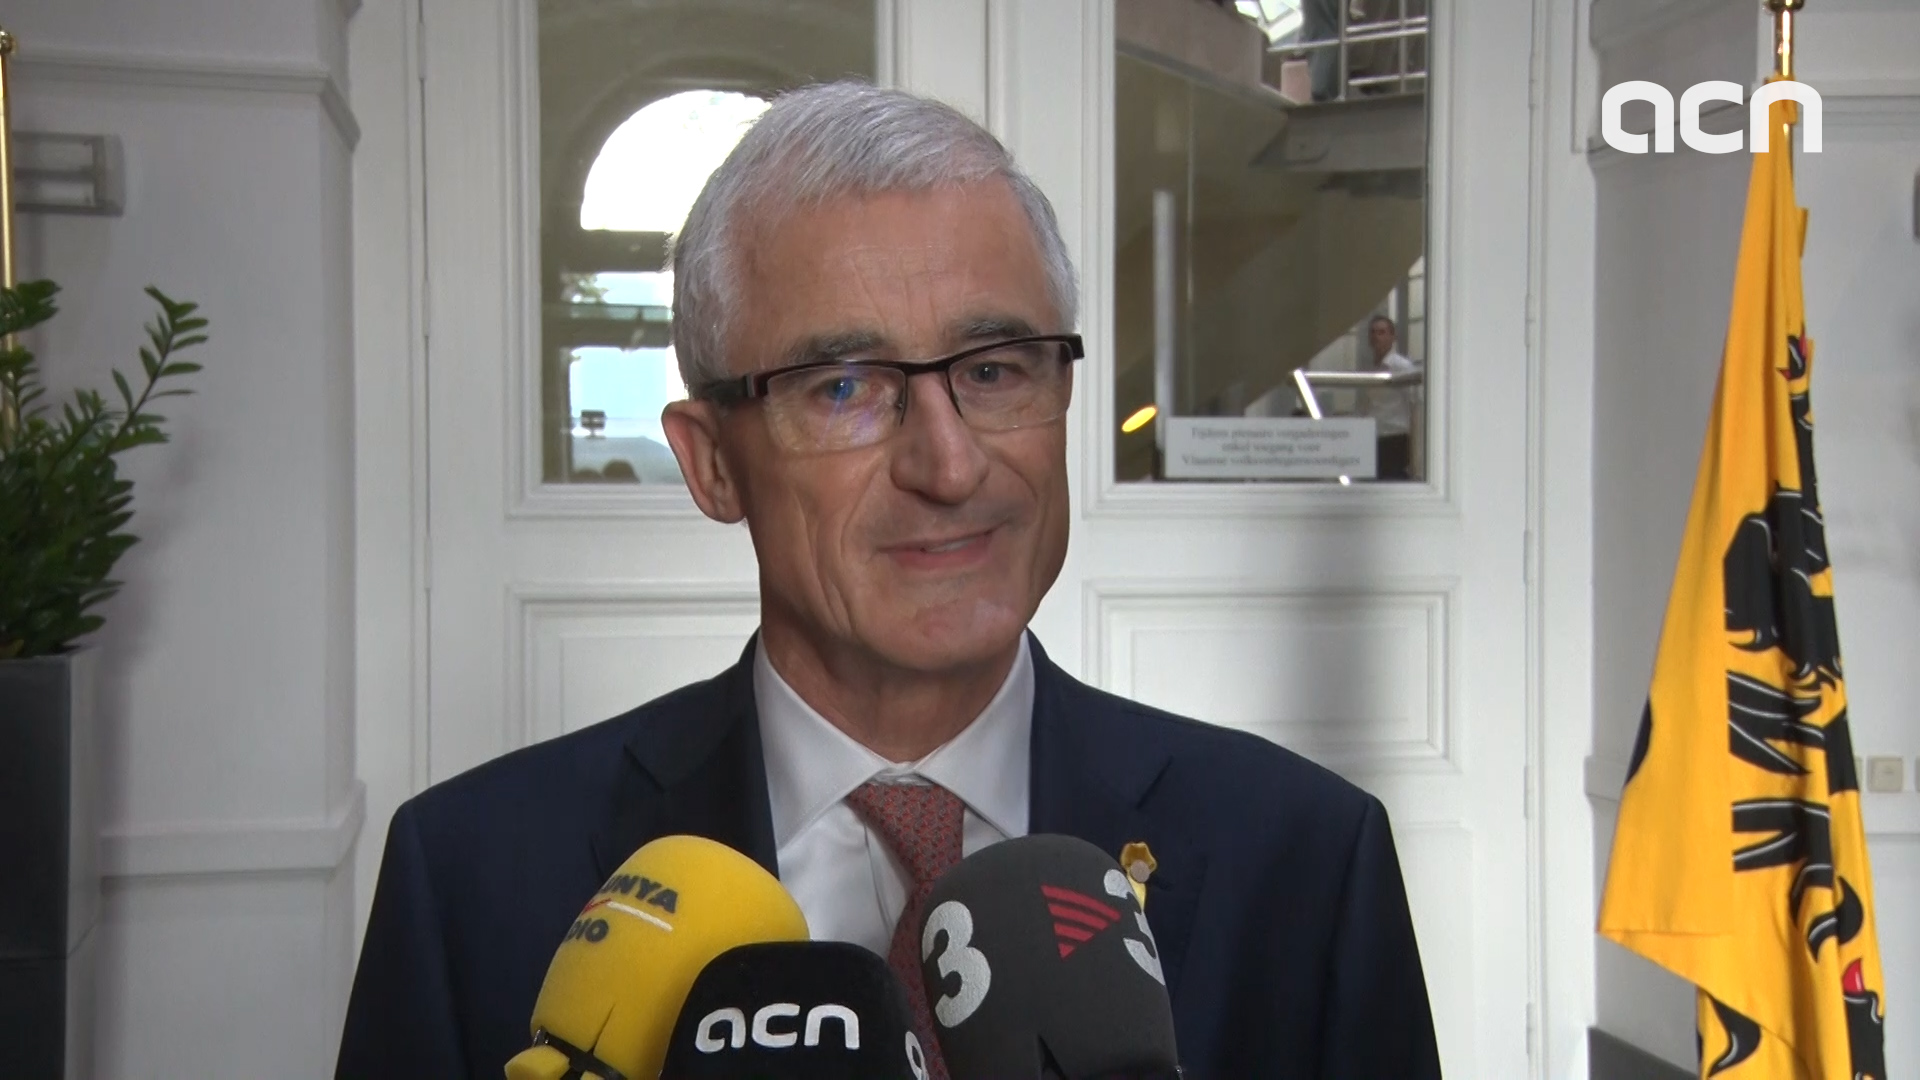 The Flemish head of government defended the separation of powers